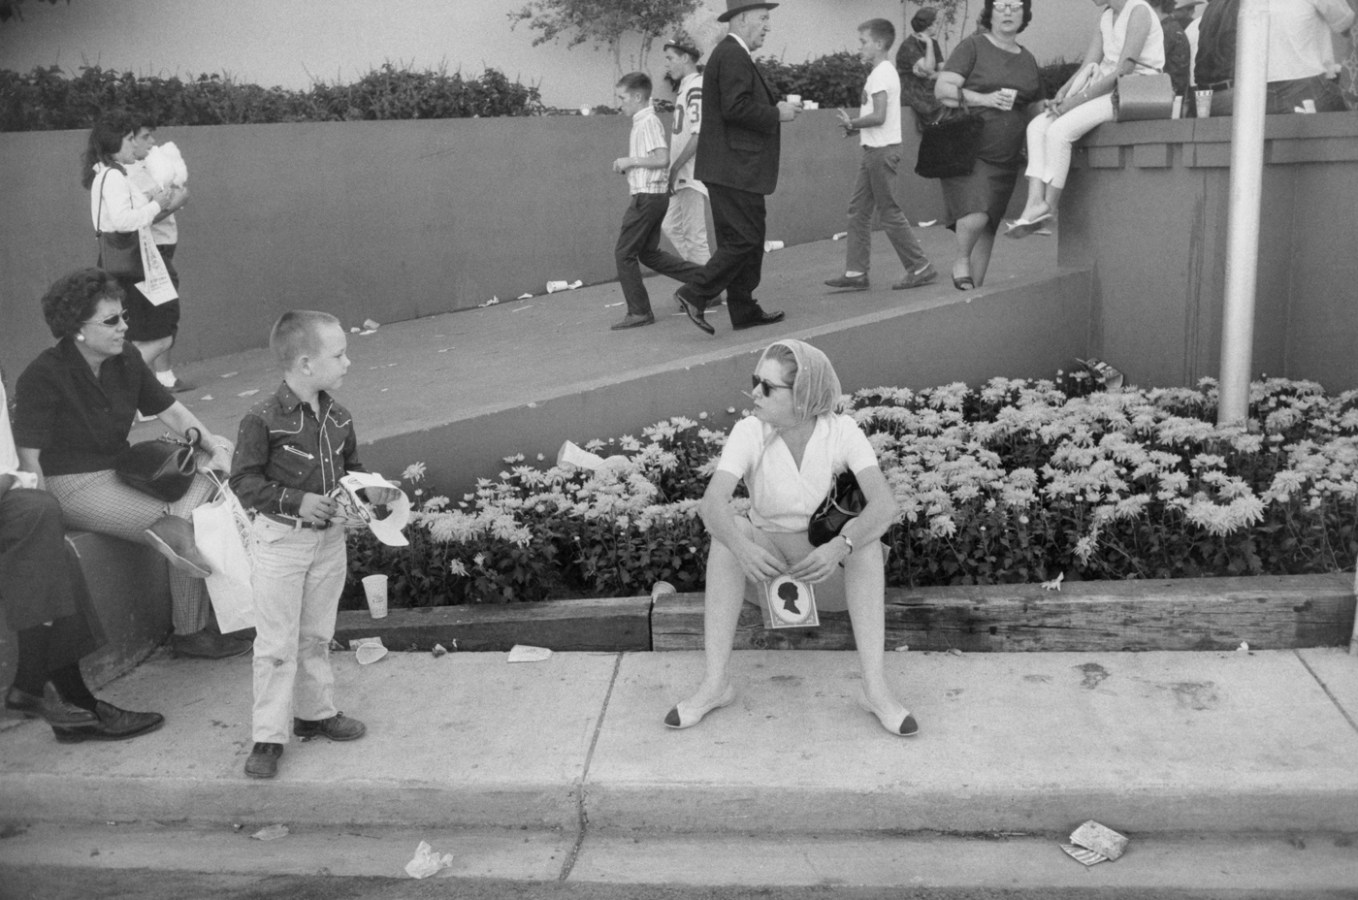 Black-and-white photograph of a woman sitting on a curb holding a cameo portrait and looking at a young boy